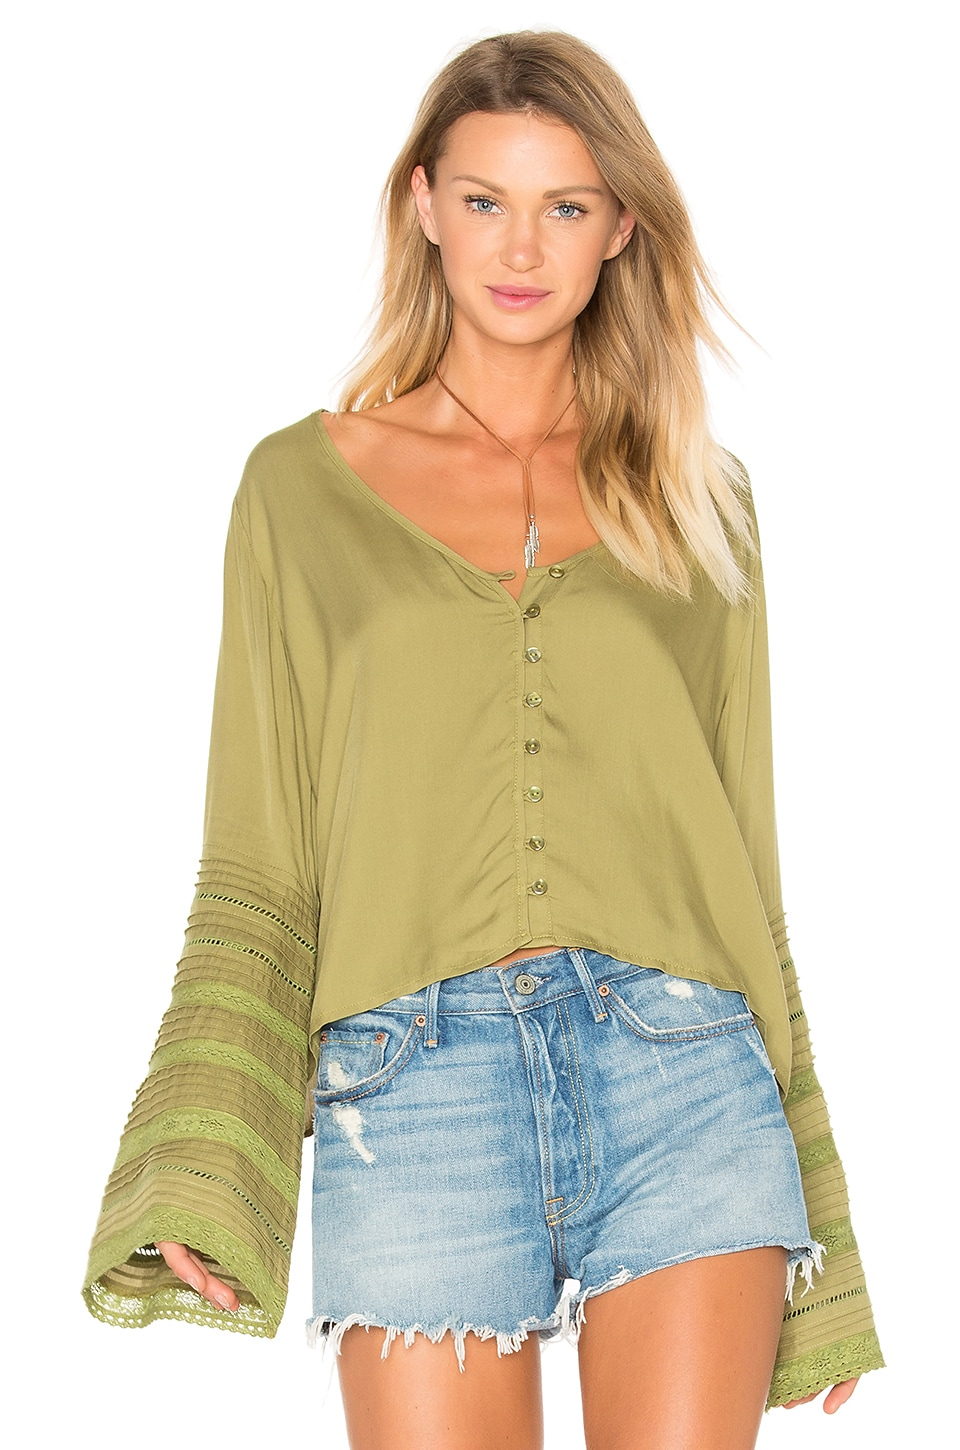 Sandy Days Belled Sleeved Top by AUGUSTE